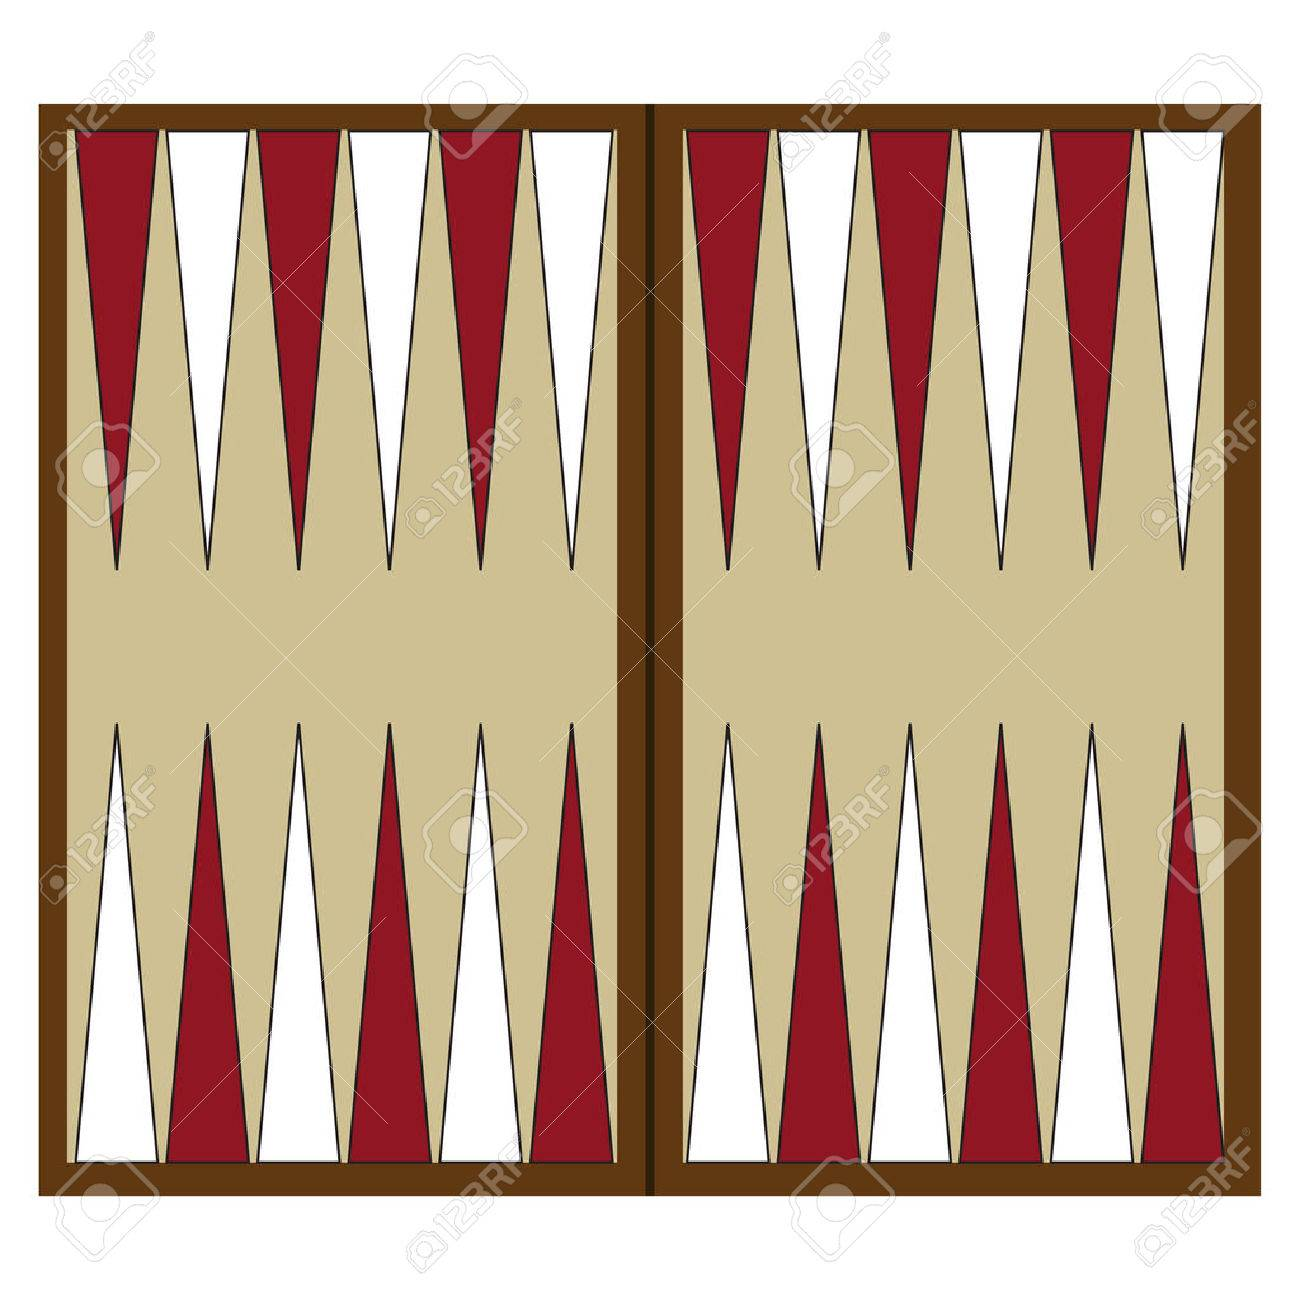 picture relating to Printable Backgammon Board called Backgammon Board Courses Fashionsneakers.club